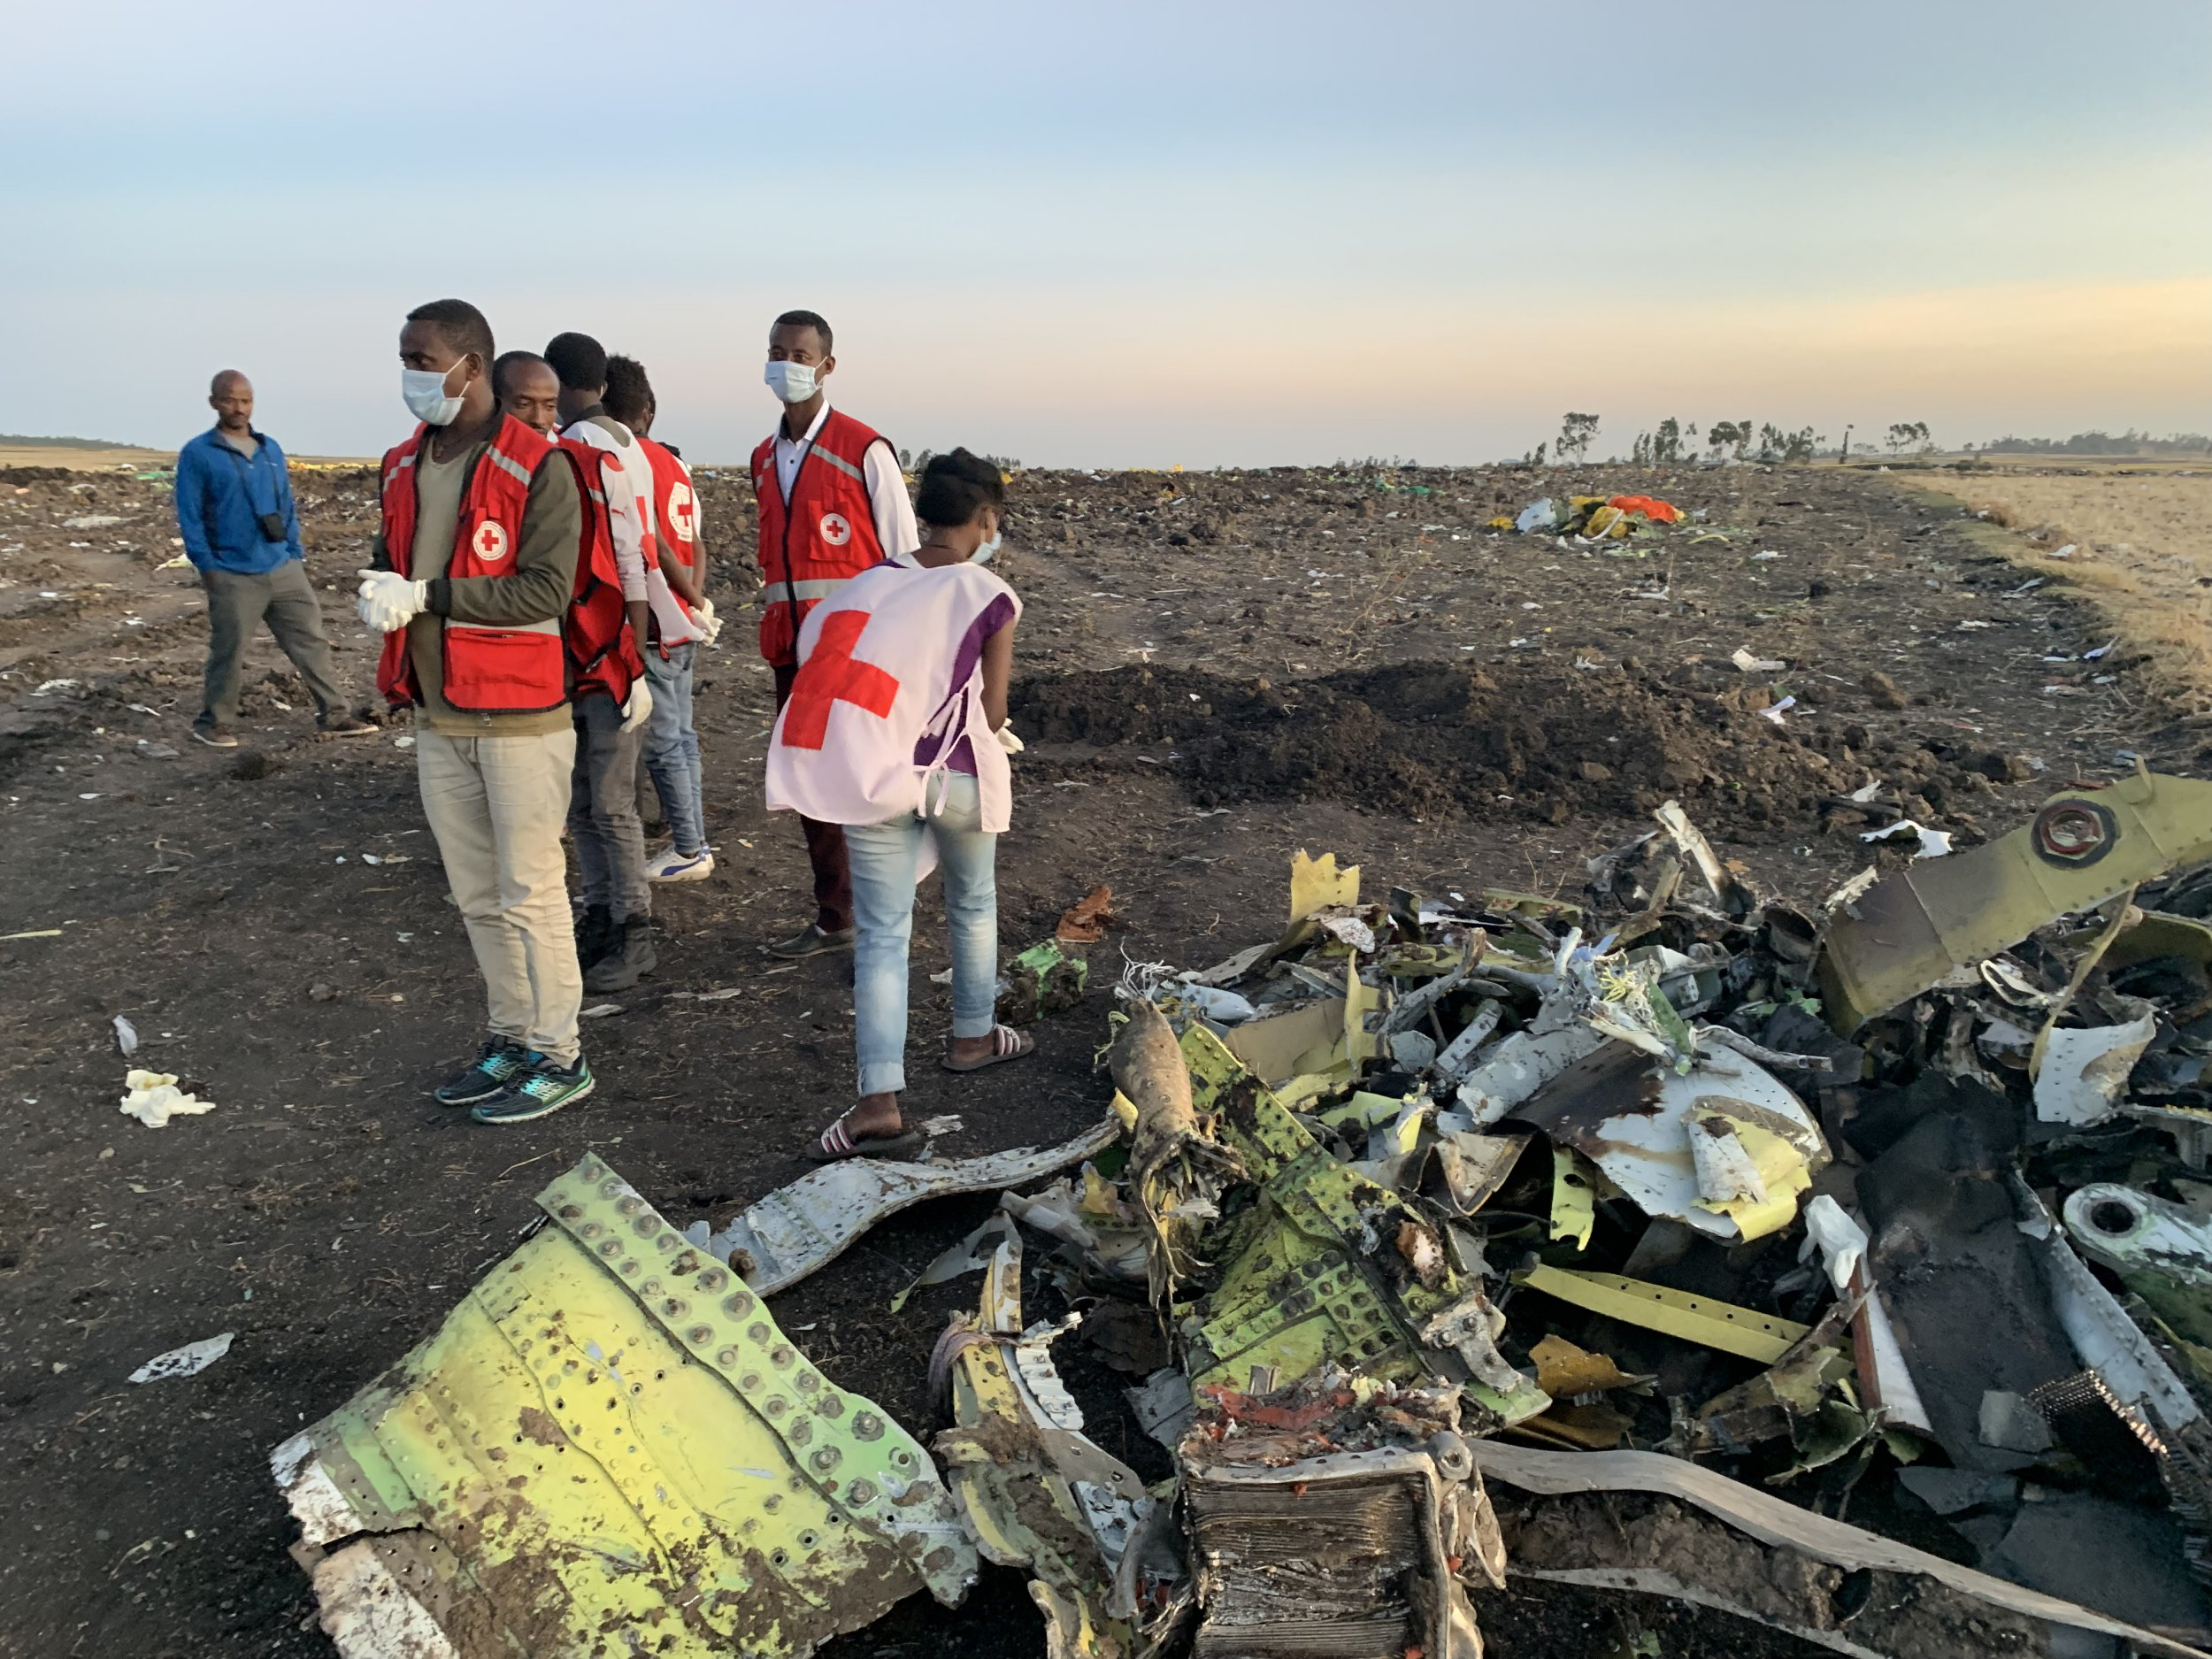 (190310) -- ADDIS ABABA, March 10, 2019 (Xinhua) -- Rescuers work beside the wreckage of an Ethiopian Airlines' aircraft at the crash site, some 50 km east of Addis Ababa, capital of Ethiopia, on March 10, 2019. All 157 people aboard Ethiopian Airlines flight were confirmed dead as Africa's fastest growing airline witnessed the worst-ever incident in its history. The incident on Sunday, which involved a Boeing 737-800 MAX, occurred a few minutes after the aircraft took off from Addis Ababa Bole International Airport to Nairobi, Kenya. It crashed around Bishoftu town, the airline said. (Xinhua/Wang Shoubao) PHOTOGRAPH BY Xinhua / Barcroft Images